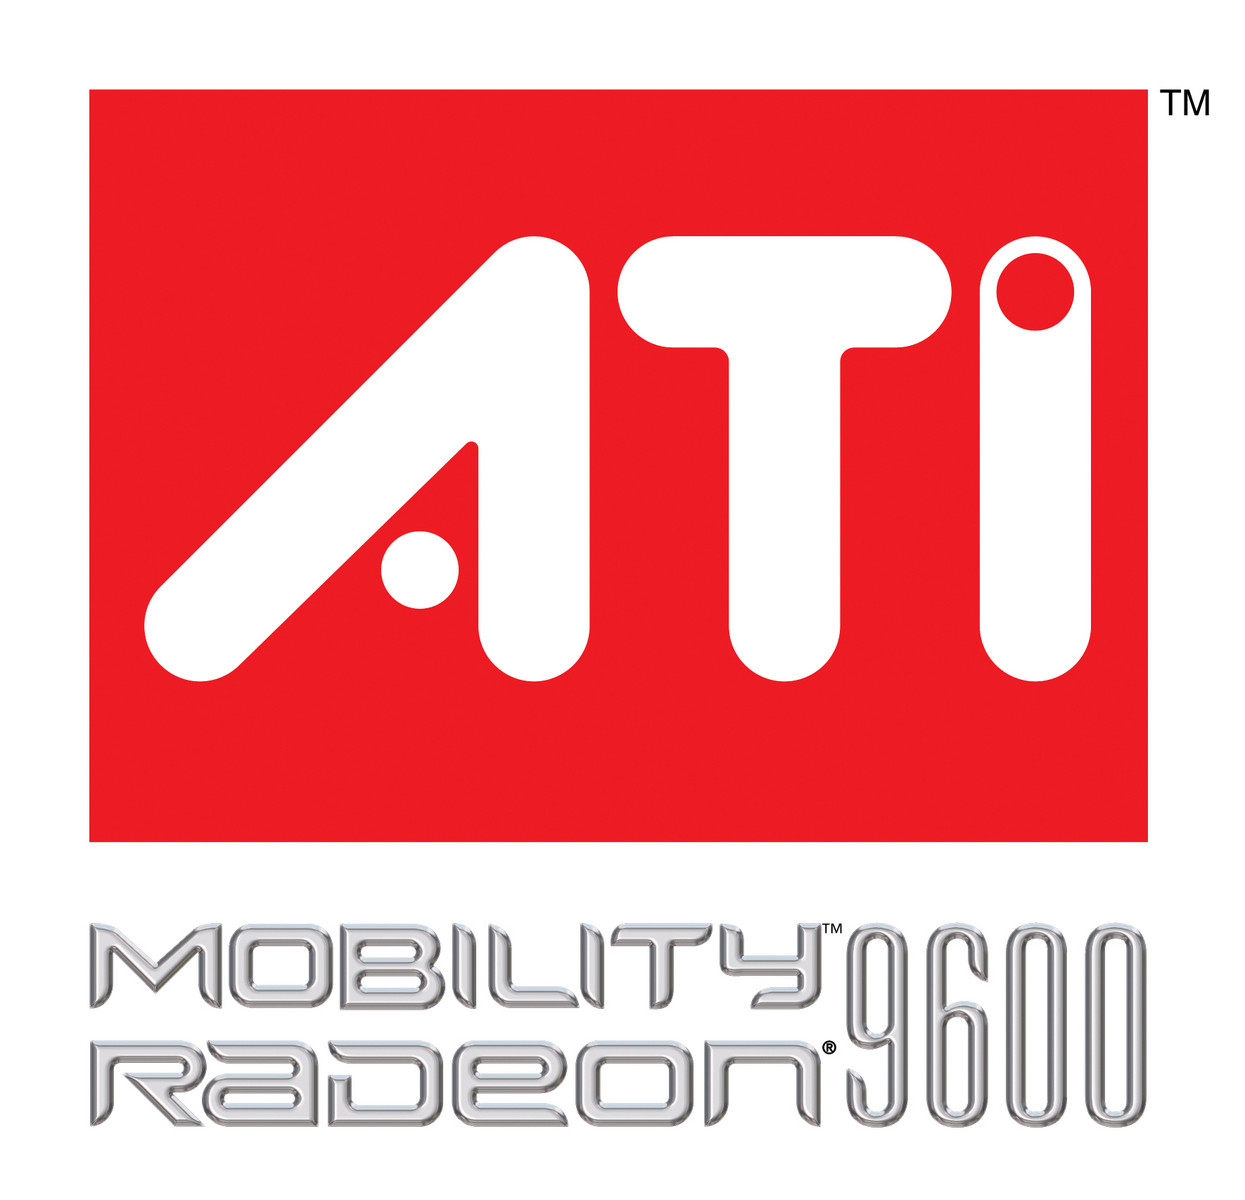 Ati radeon 9600 linux drivers for windows 7.